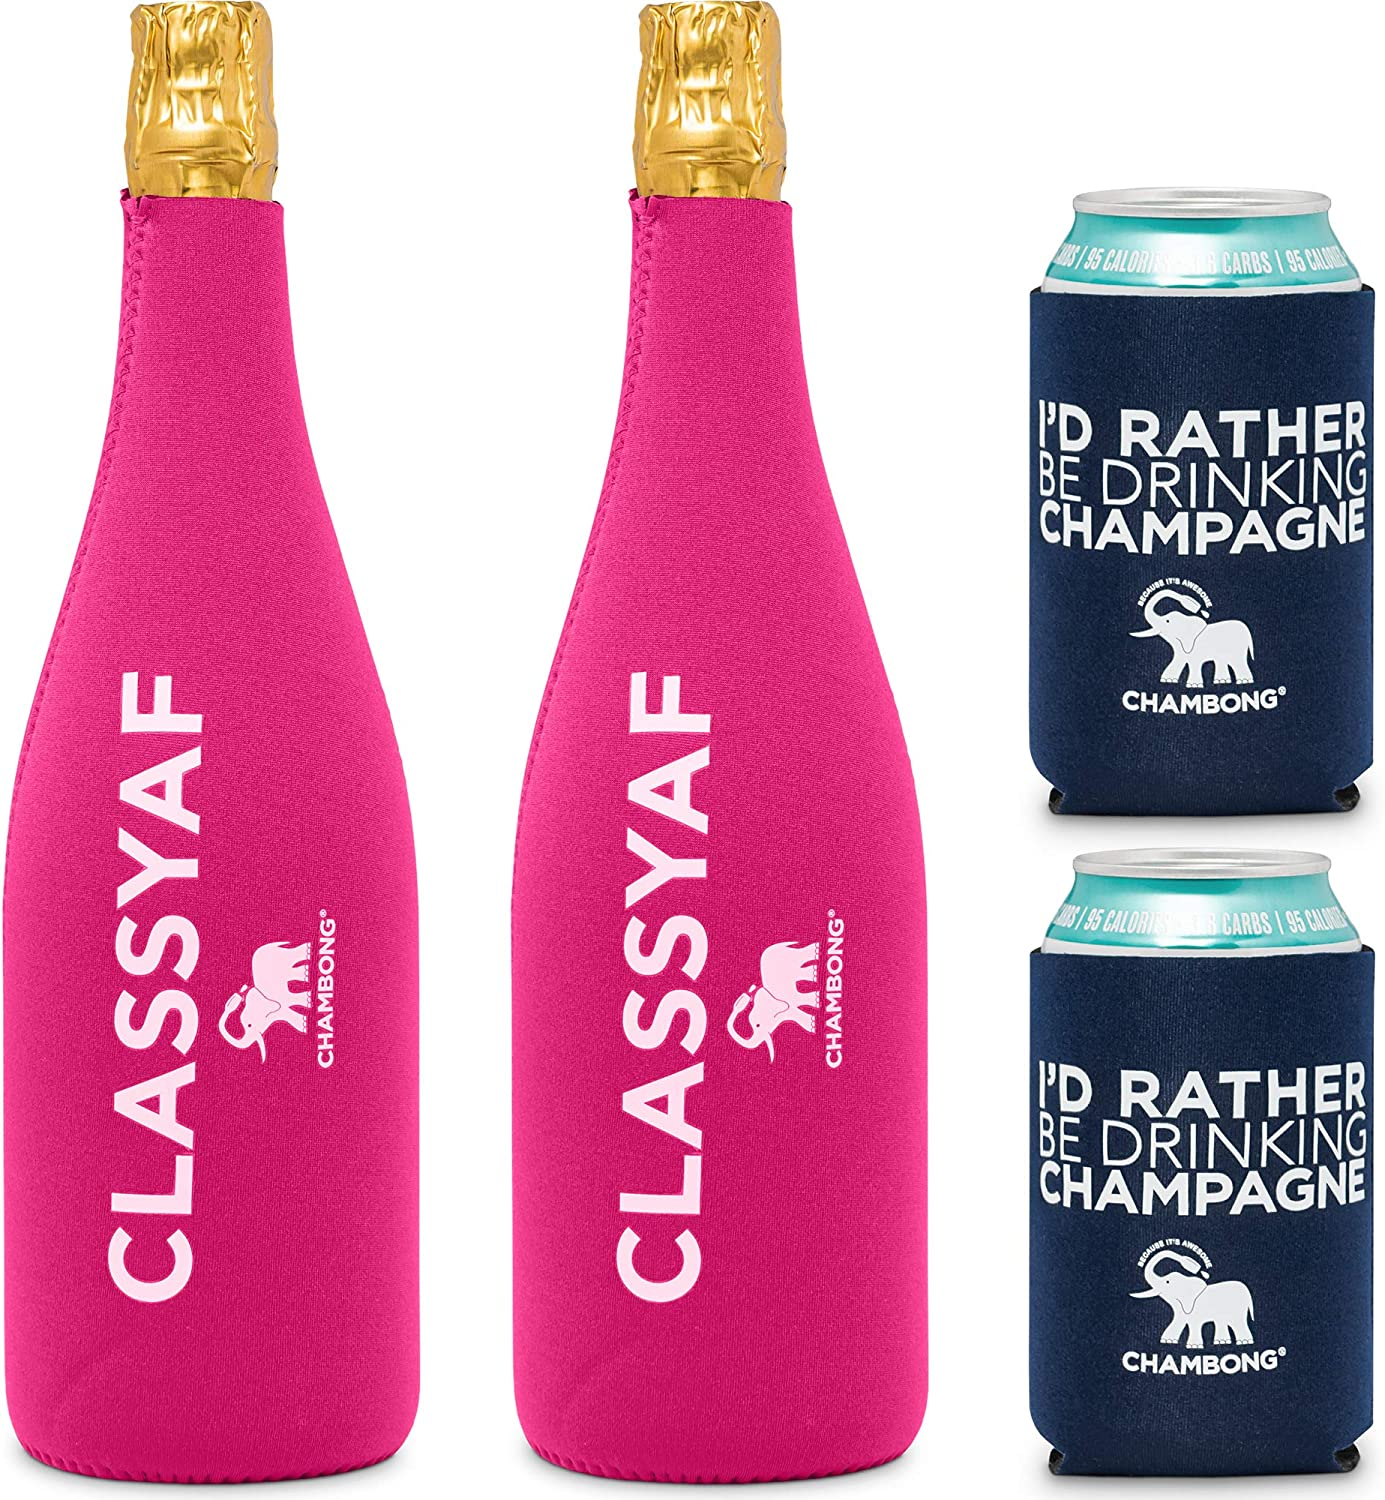 CHAMBONG - 4 Pack Champagne Bottle and Beer Can Coolie Insulators - Perfect for Chambong Party